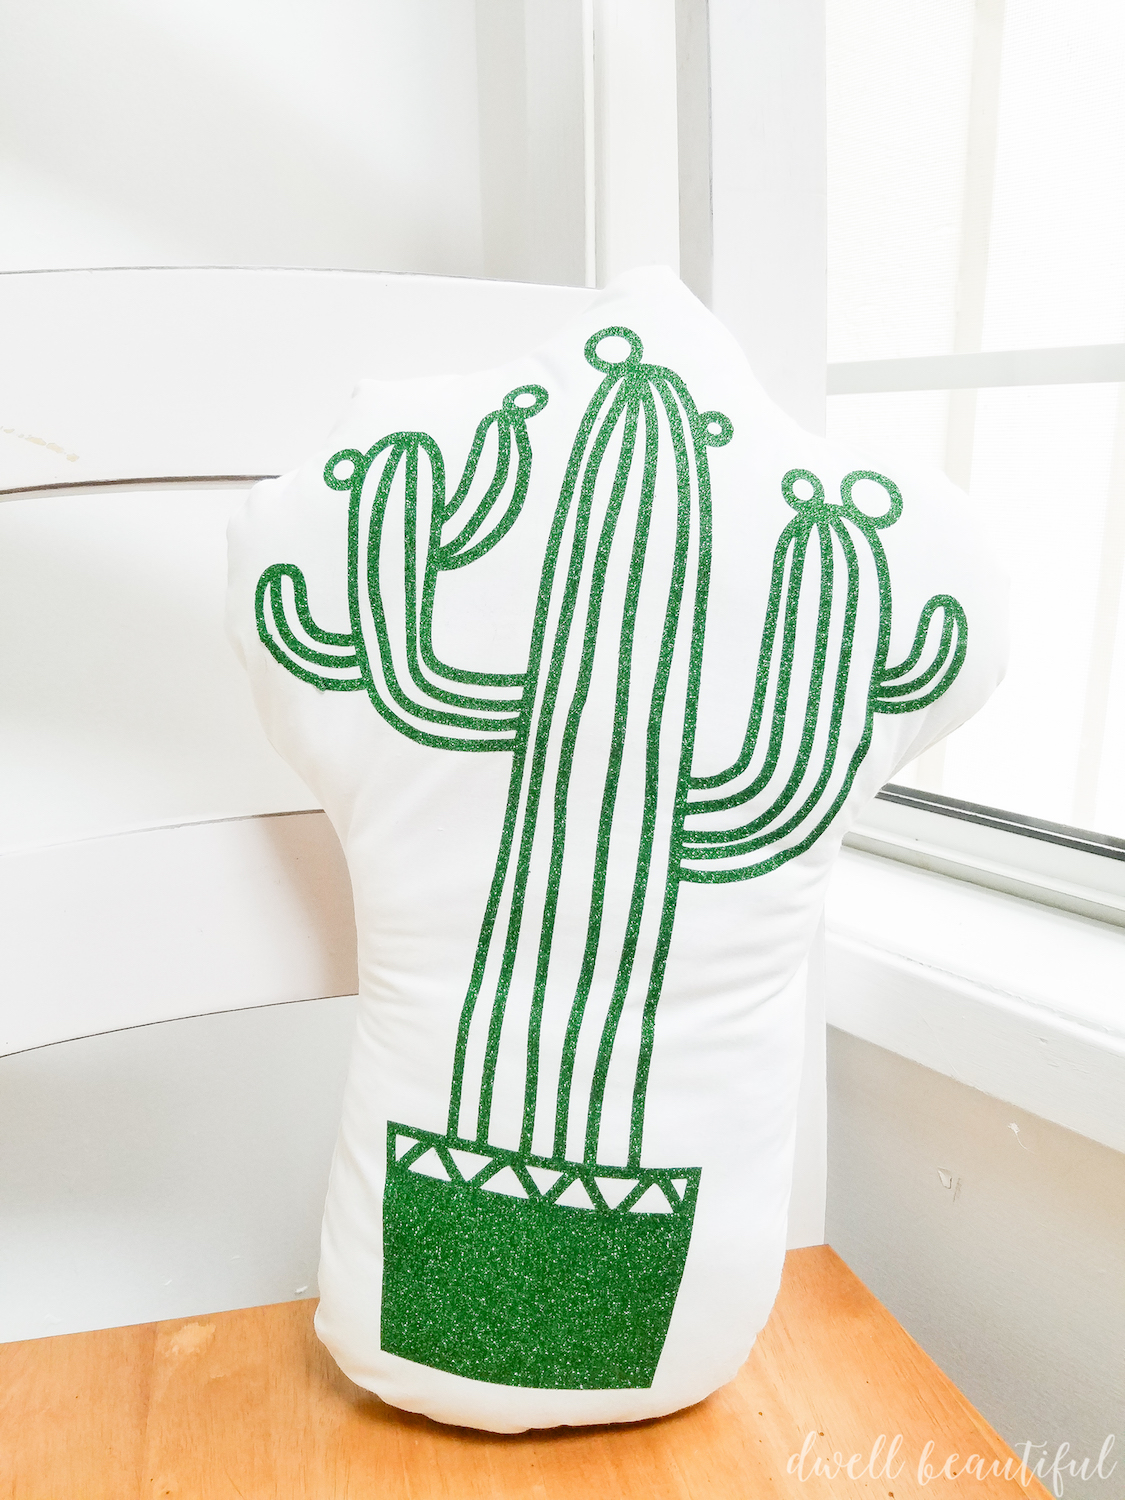 How to Make an Adorable DIY Cactus Pillow - Dwell Beautiful